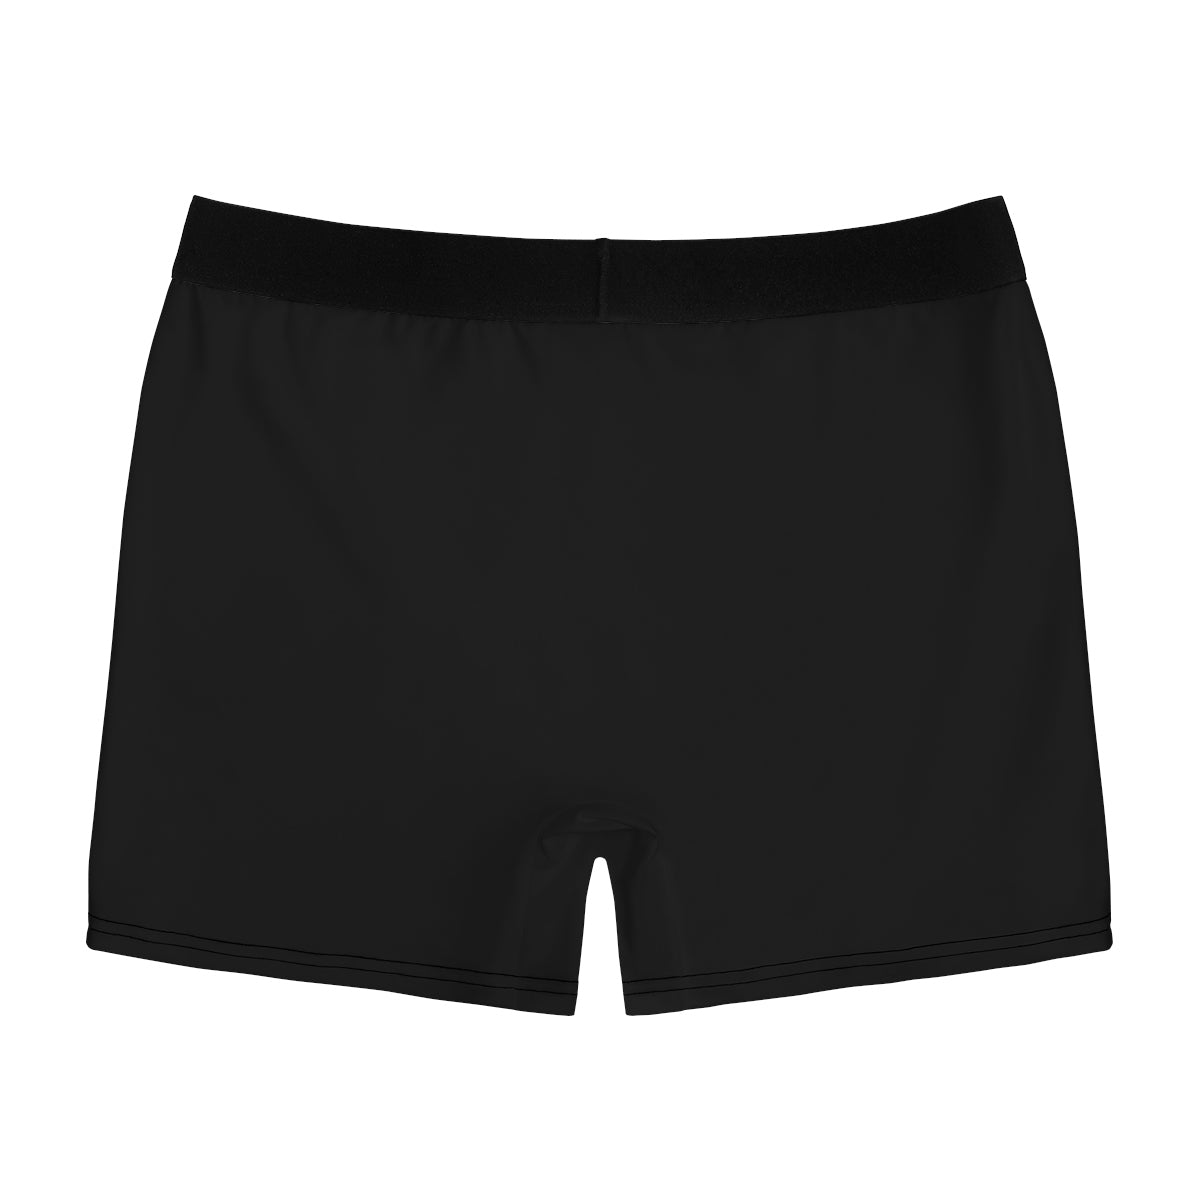 Property Of WCI/Men's Boxer Briefs